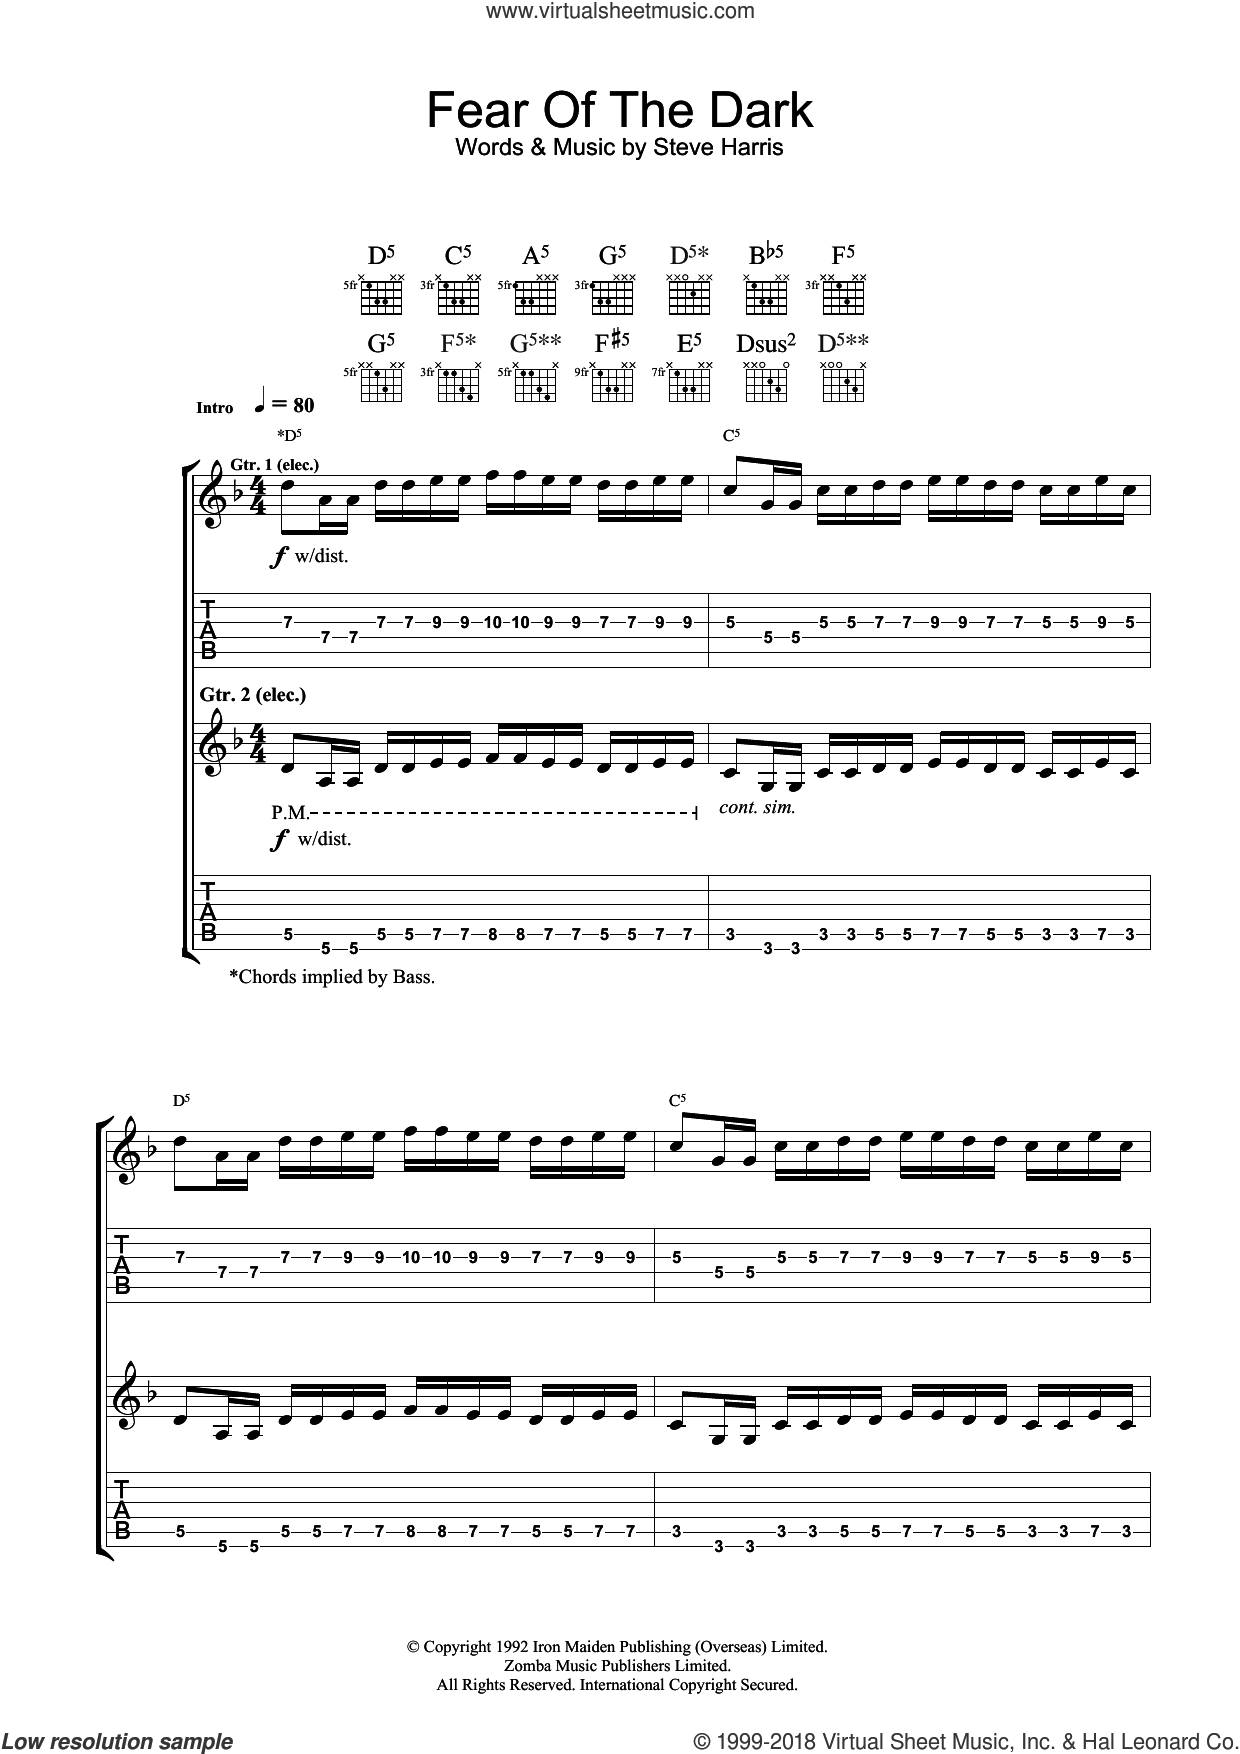 Fear Of The Dark sheet music for guitar (tablature) by Iron Maiden and Steve Harris, intermediate skill level